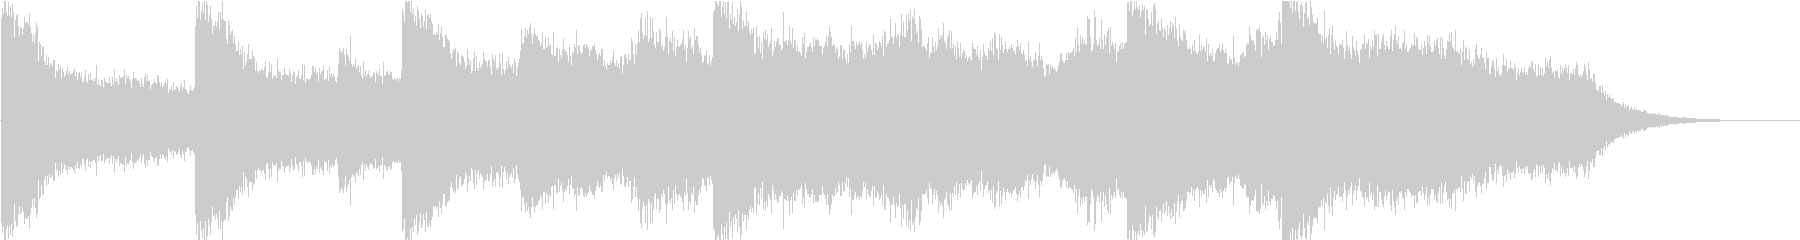 Hollywood movie style BGM (OP · appearance)'s unreproduced waveform